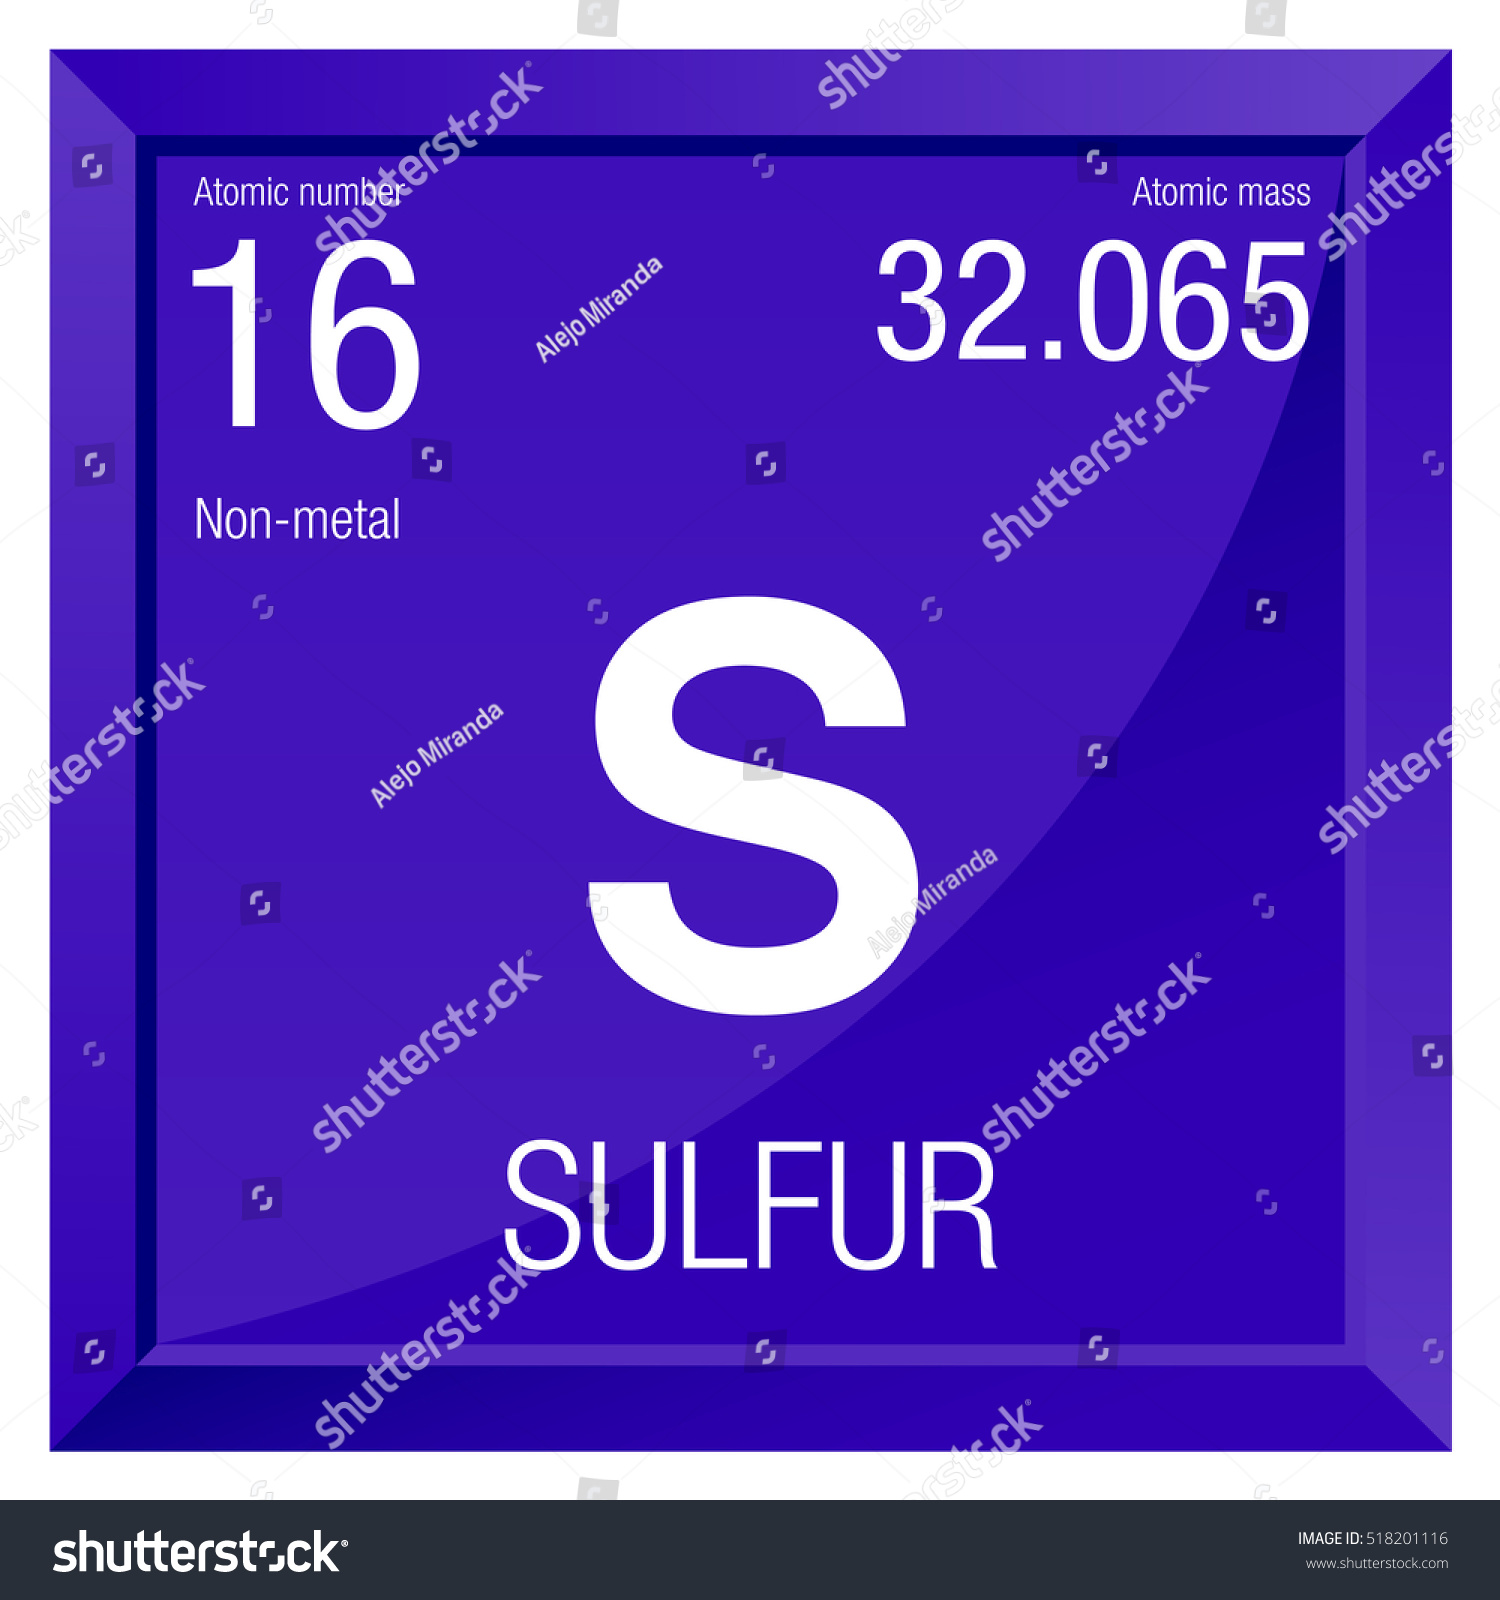 Sulfur symbol element number 16 periodic stock vector 518201116 sulfur symbol element number 16 of the periodic table of the elements chemistry gamestrikefo Gallery